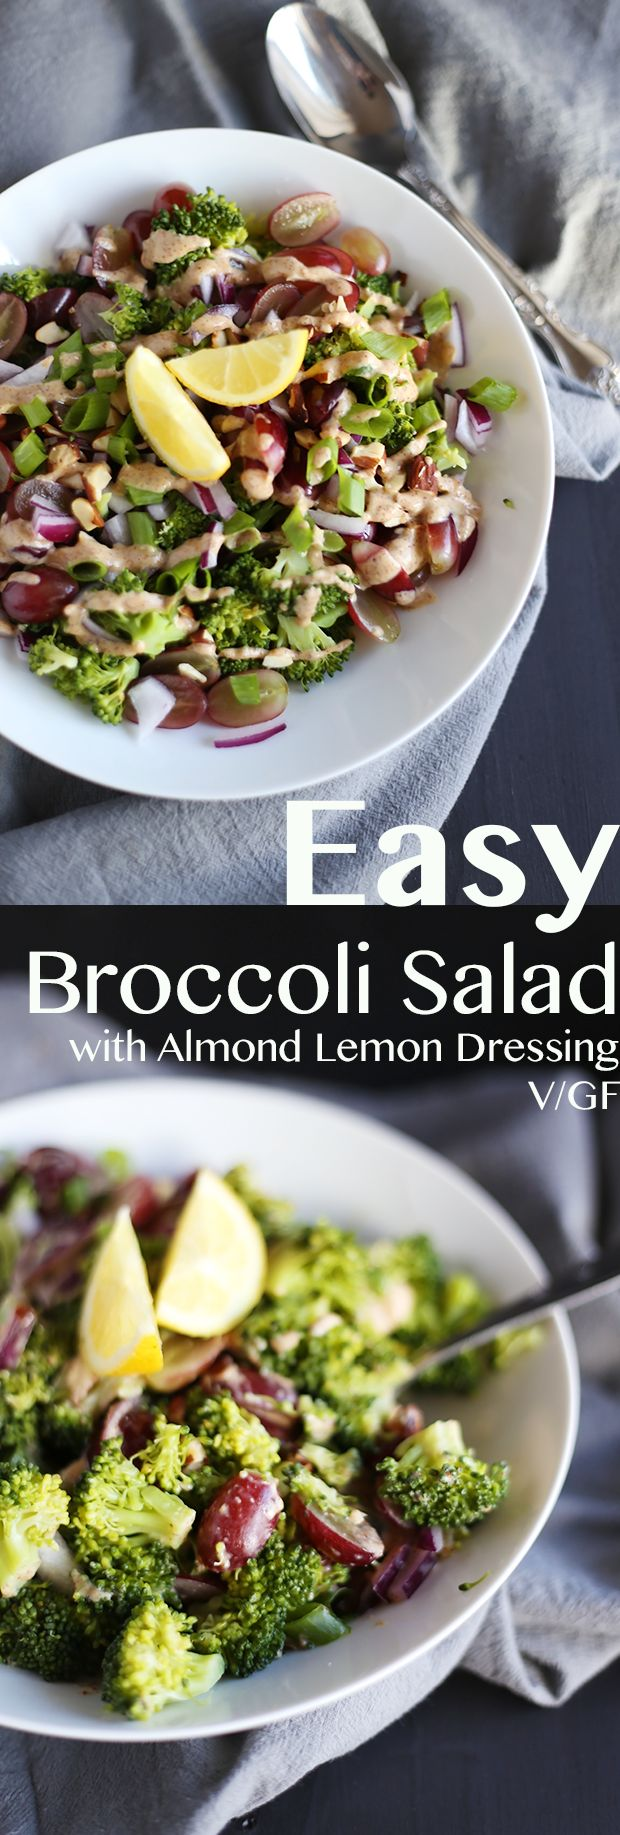 This Easy Broccoli Salad with Almond Lemon Dressing is super healthy! It includes broccoli, almonds, grapes, onions and an almond butter lemon dressing! Quick and easy to make, Vegan and Gluten free!   TwoRaspberries.com